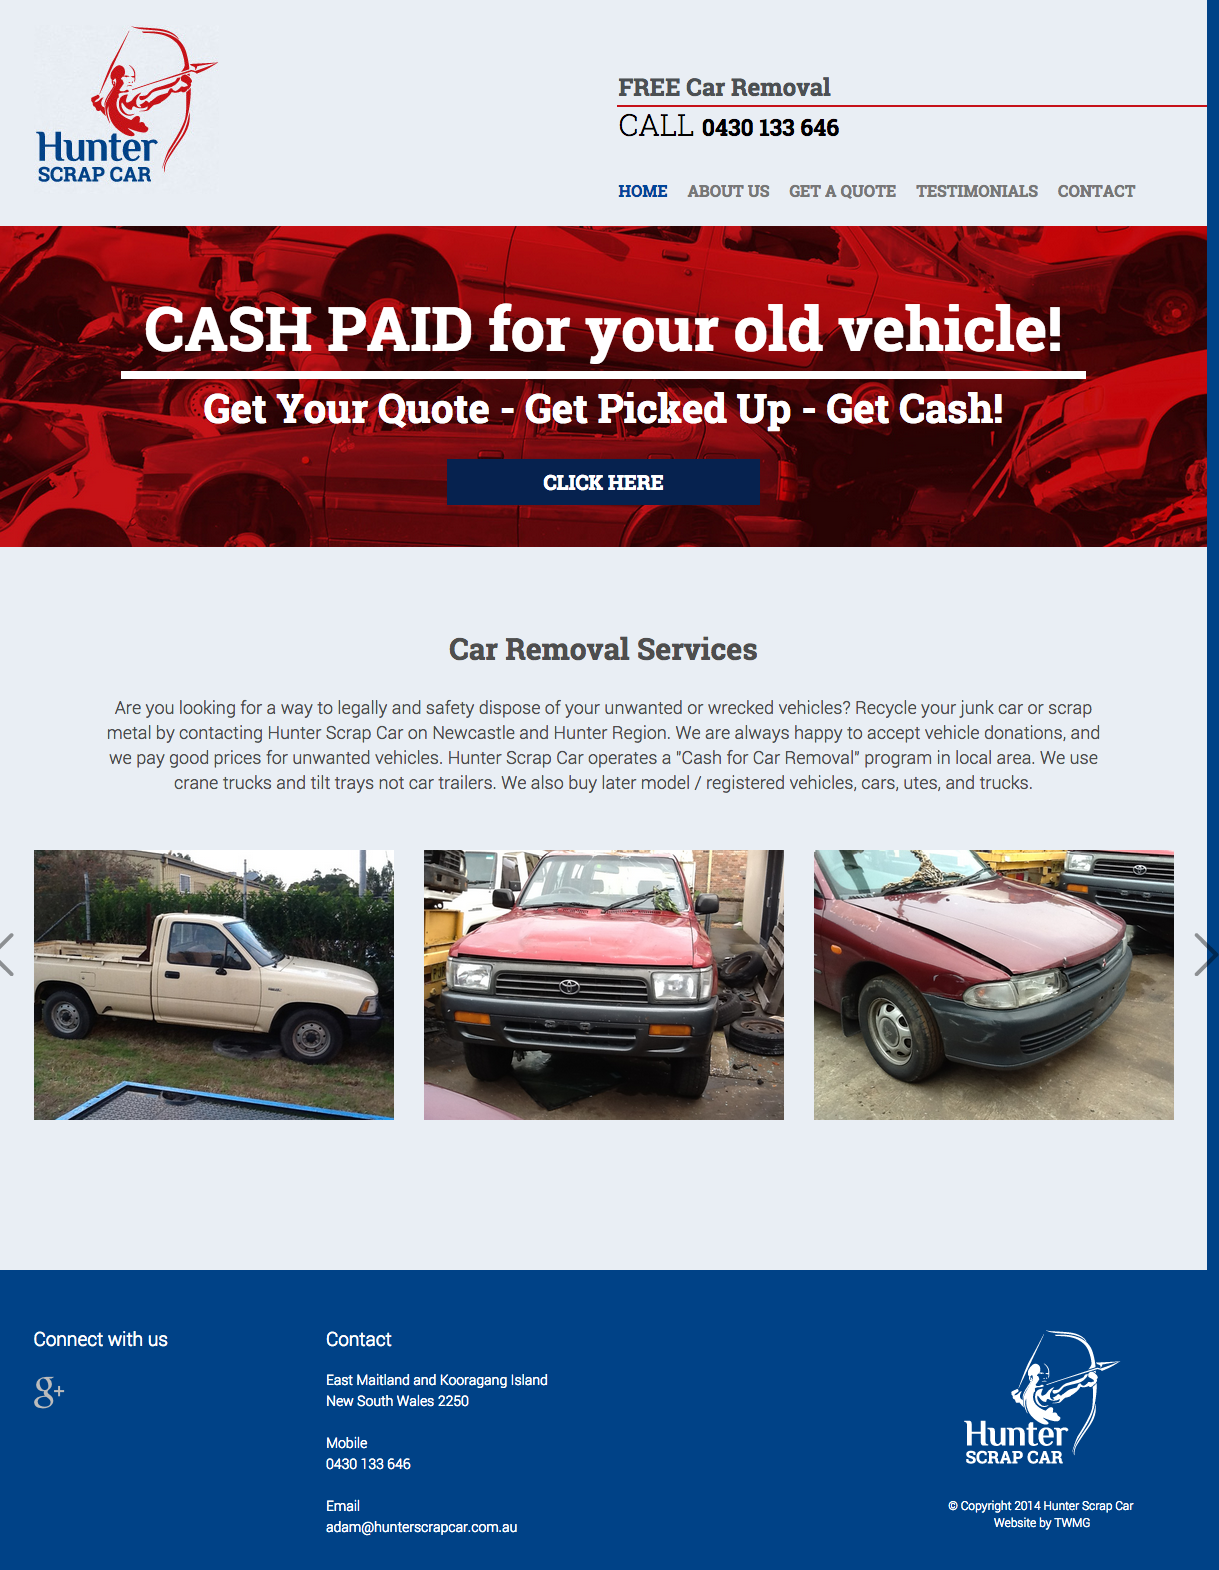 Check out Hunter Scrap Car - Website Design - Home to know how our web developers and web design Sydney team to help your online marketing, SEO, SEM, social marketing and web development.